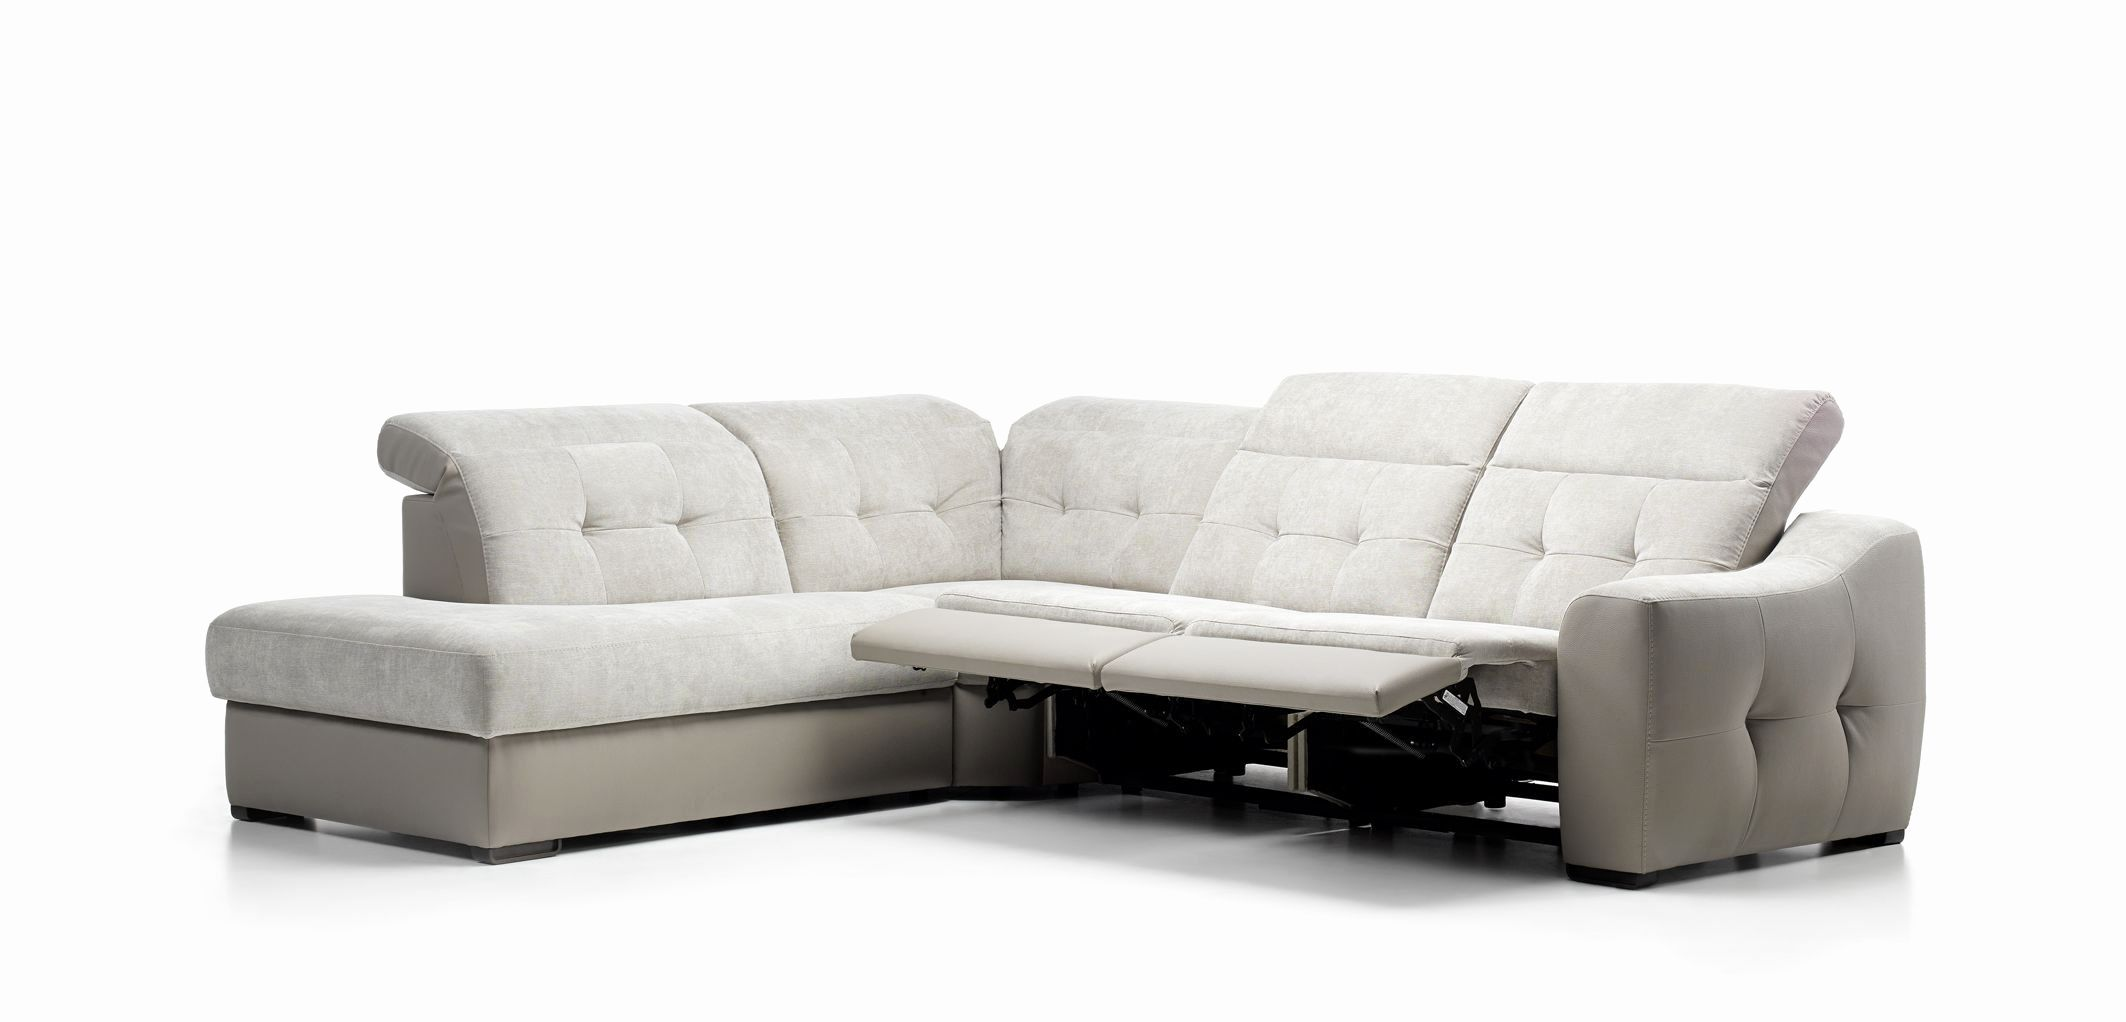 Beautiful Reclining Modern Sofa Pictures Reclining Modern Sofa